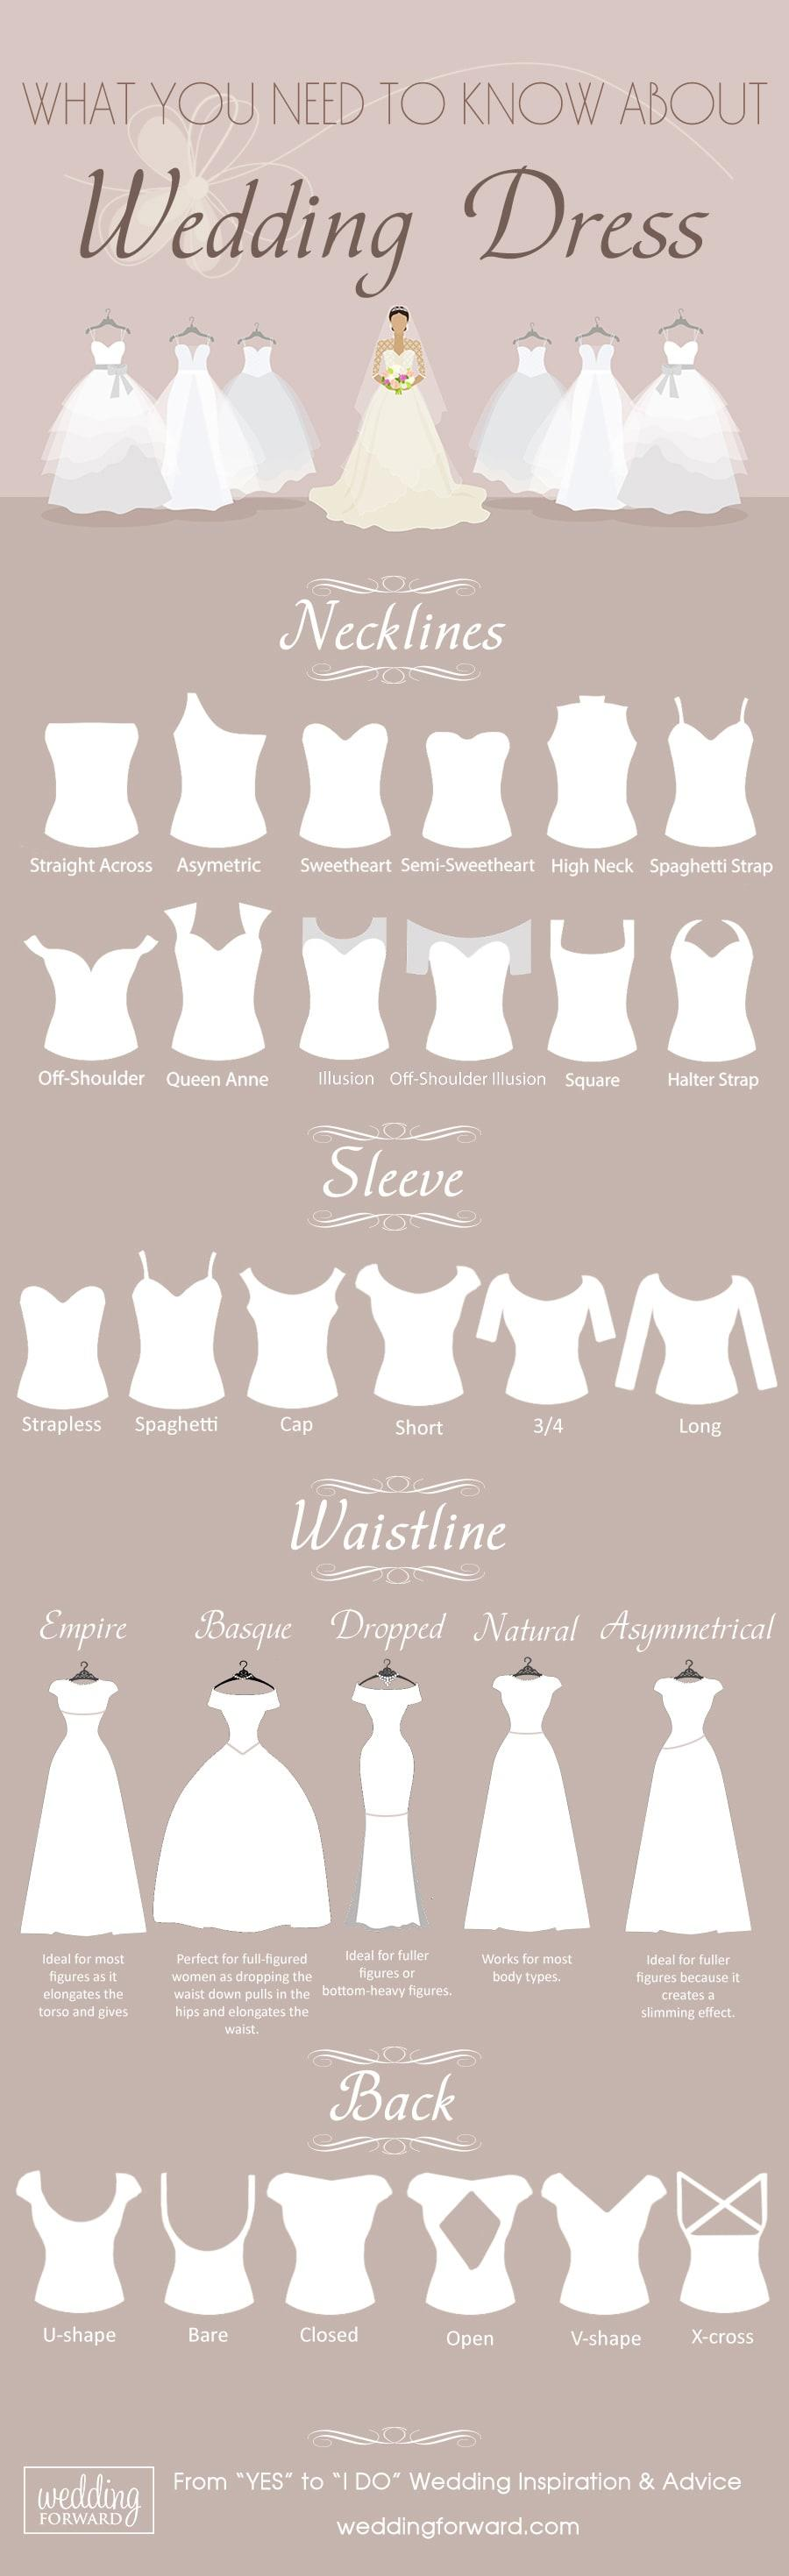 wedding planning infographics wedding dress guide